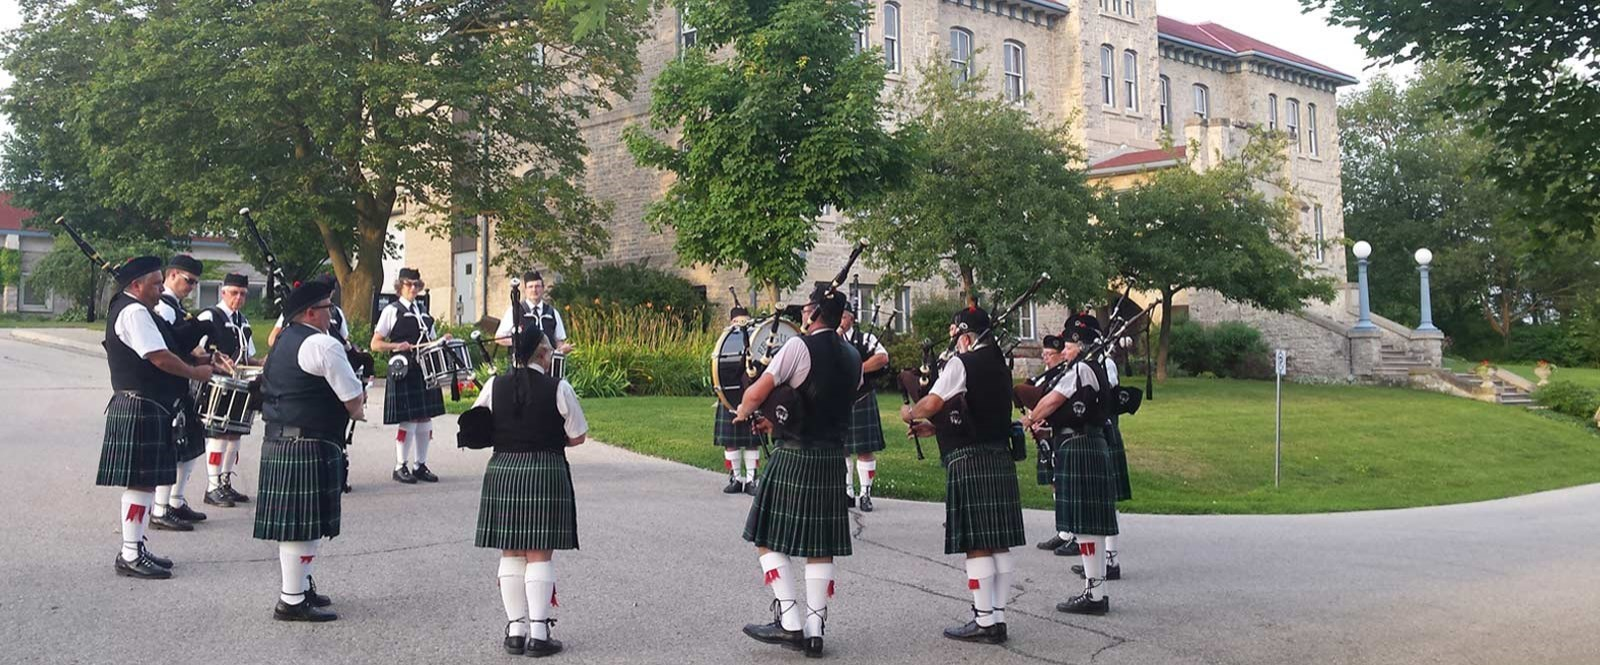 Group of Bagpipers